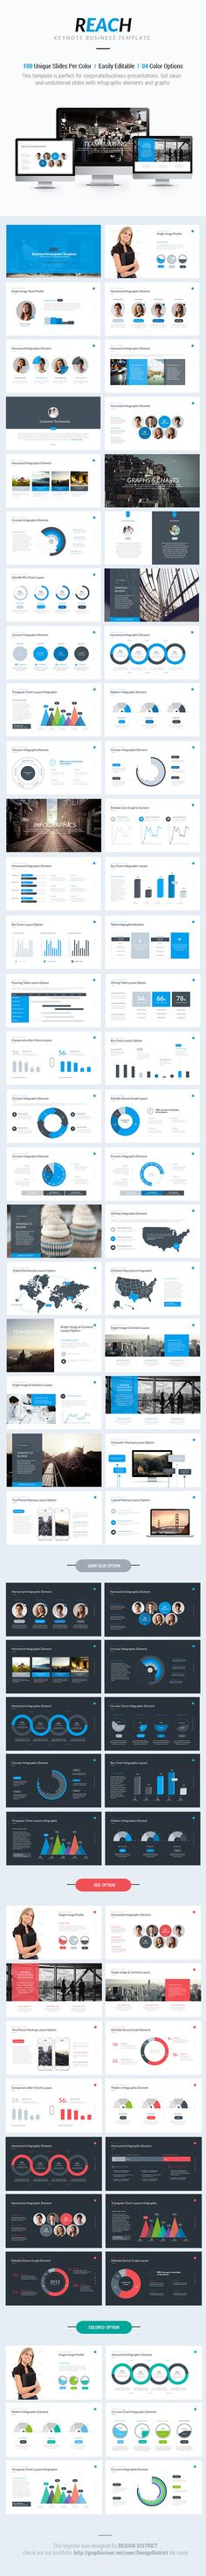 Keynote Business Template #design Download: http://graphicriver.net/item/keynote-business-template/12026704?ref=ksioks